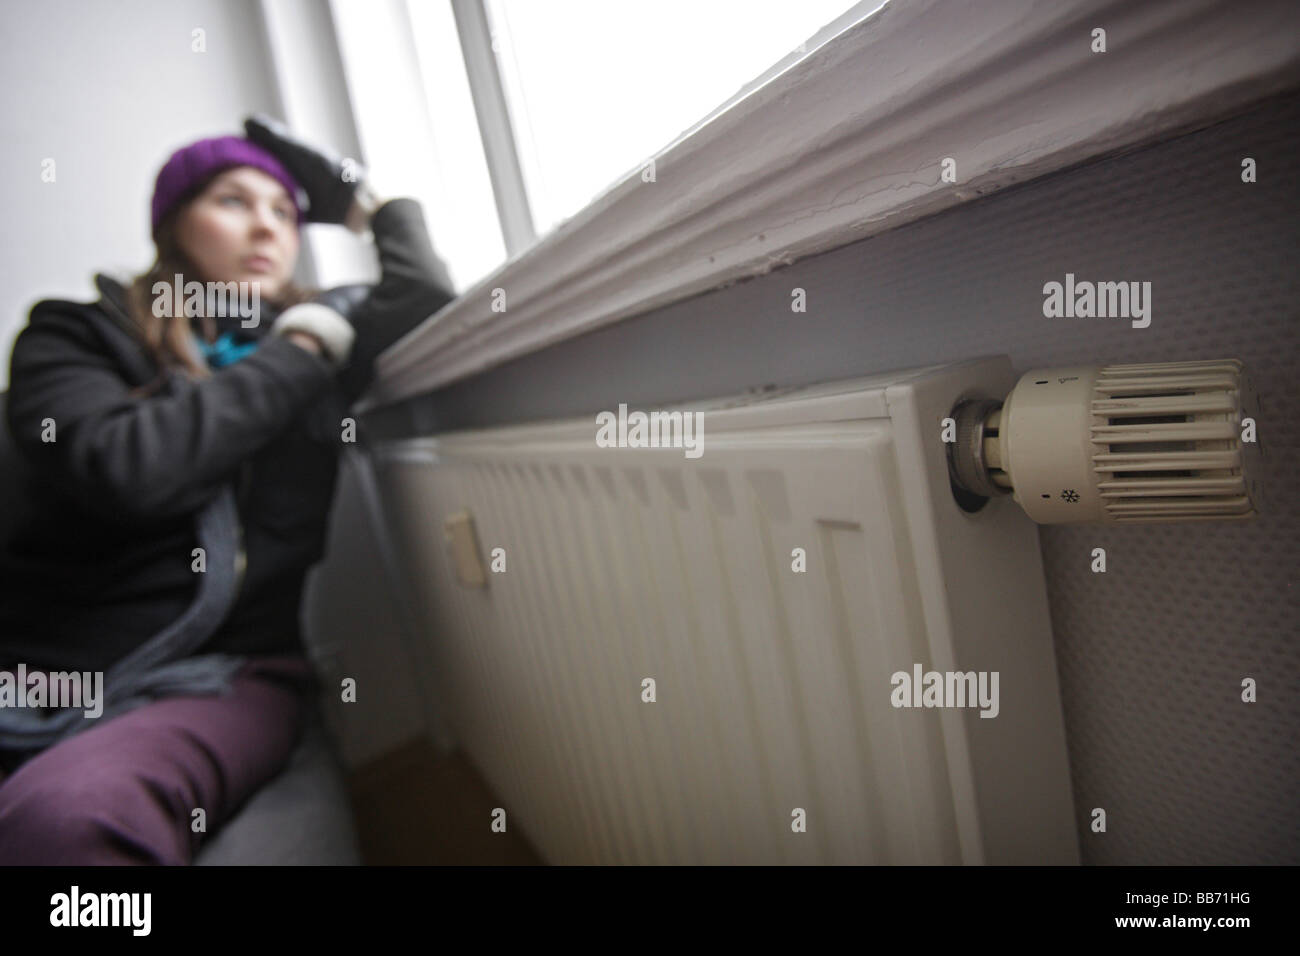 Saving heating coasts young woman at home wearing a cap and gloves - Stock Image